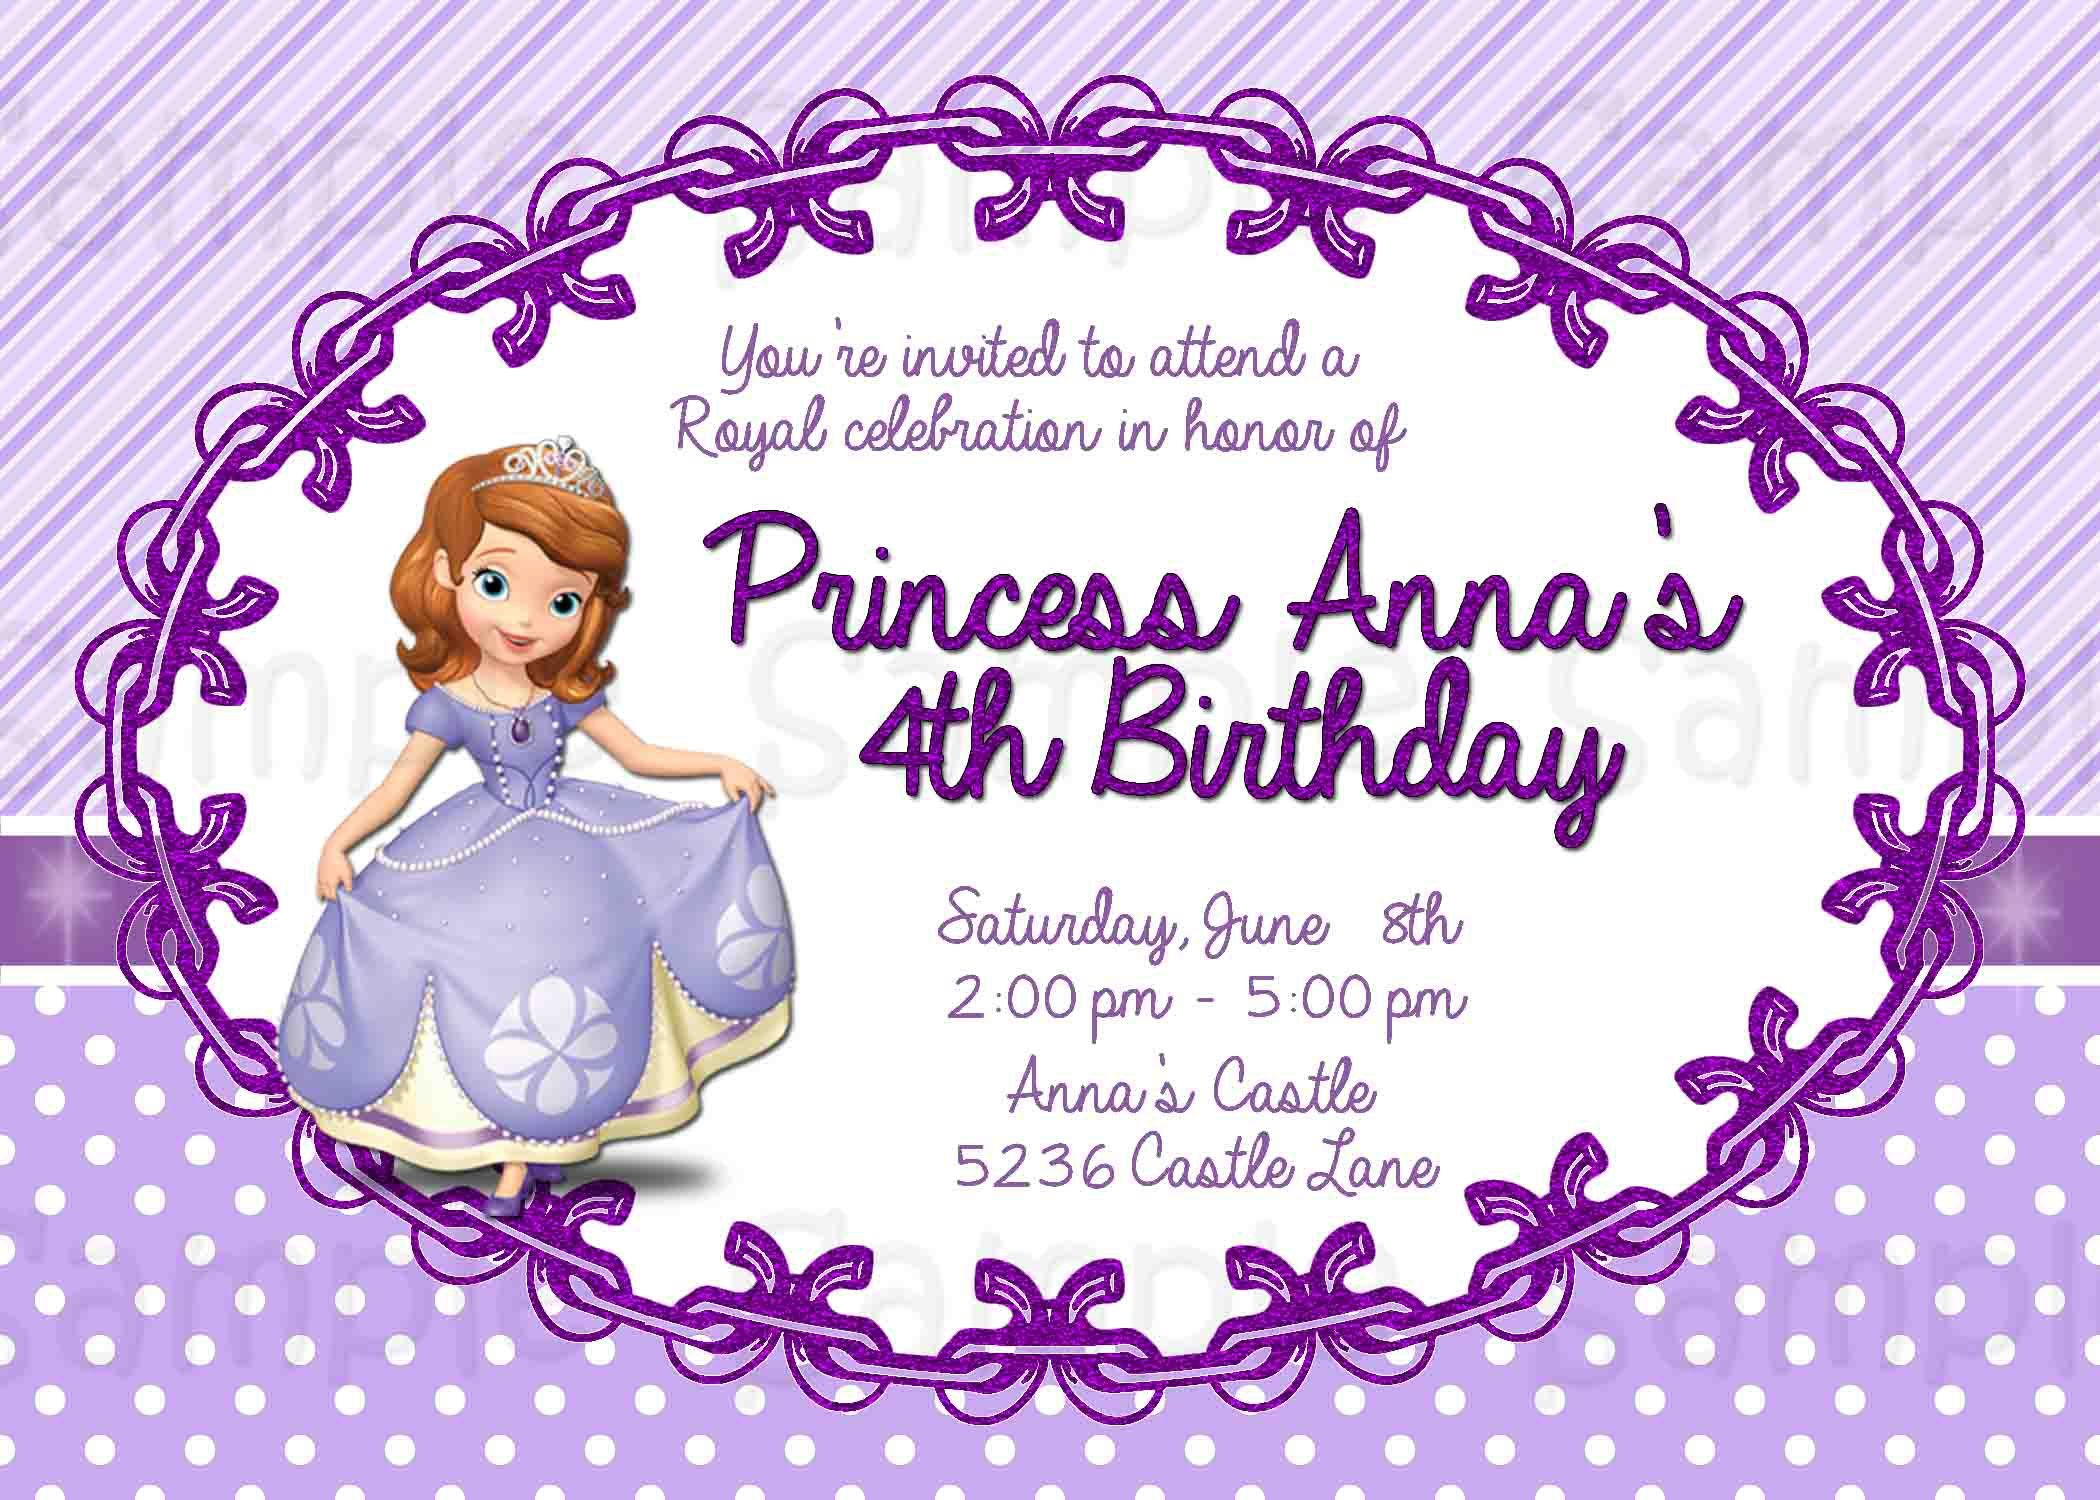 Custom Birthday Invitations Online Online Birthday Invitations Custom Birthday Invitations First Birthday Invitations